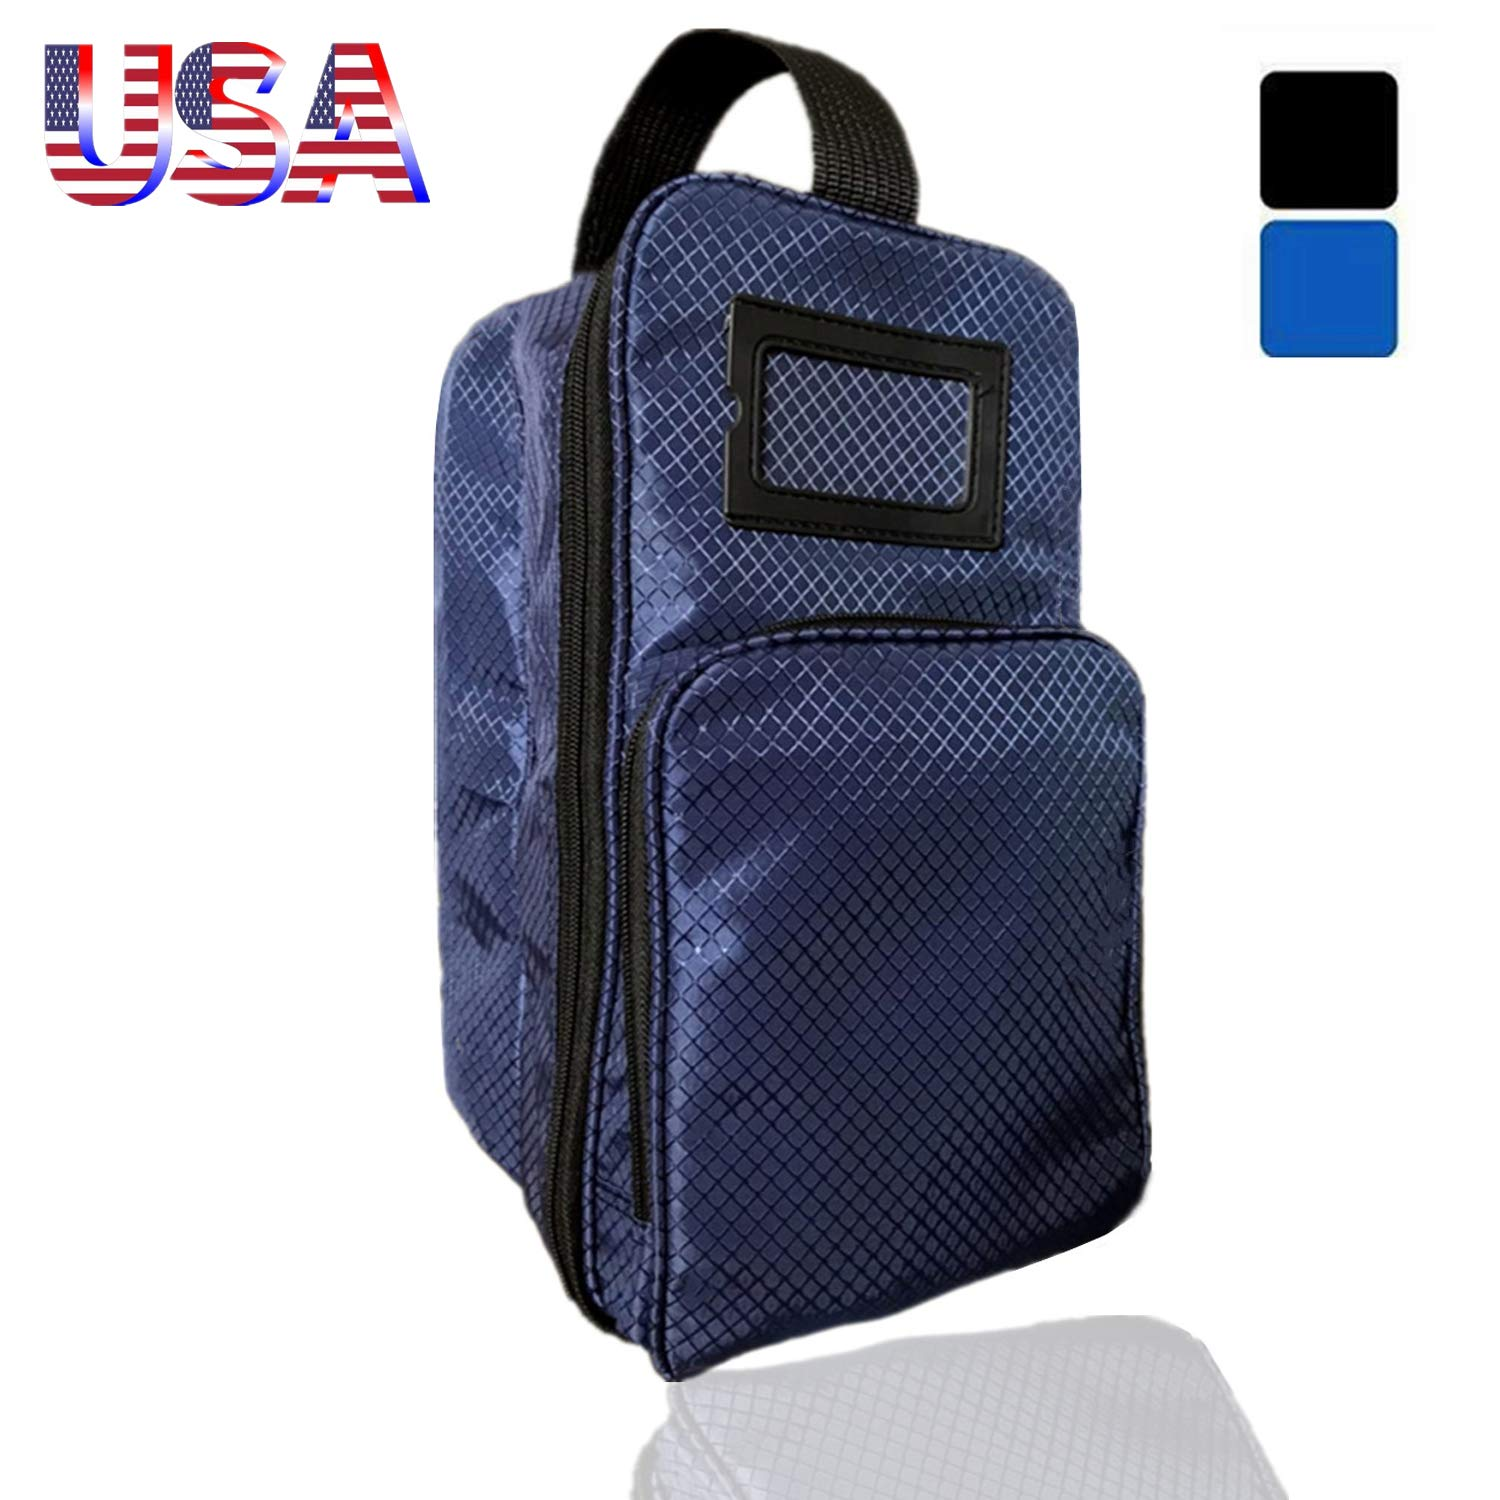 Amy Sport Golf Shoe Bag Zippered Sports Travel Shoes Case with Outside Pocket Pack, Convenient Lightweight Carrier for Men Women Basketball Soccer Gym Gift (Navy) by Amy Sport